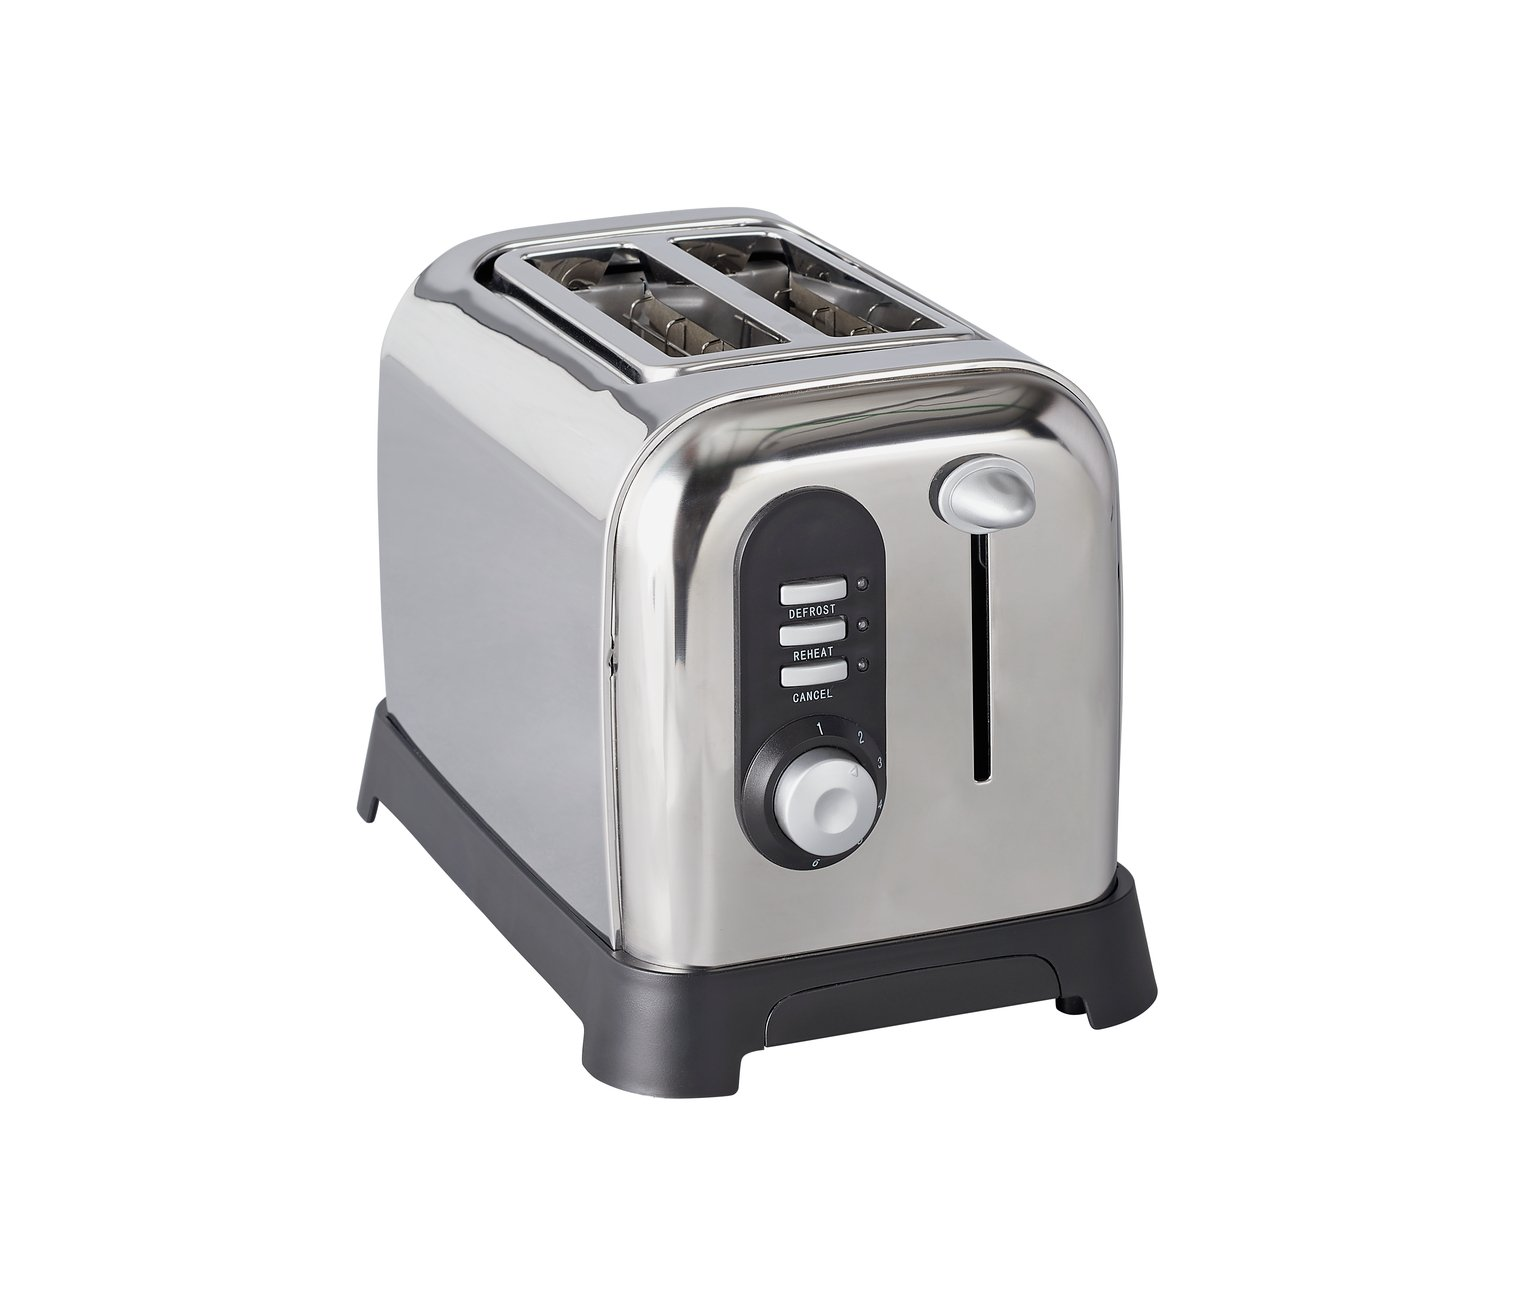 Cookworks 2 Slice Toaster - Polished Stainless Steel